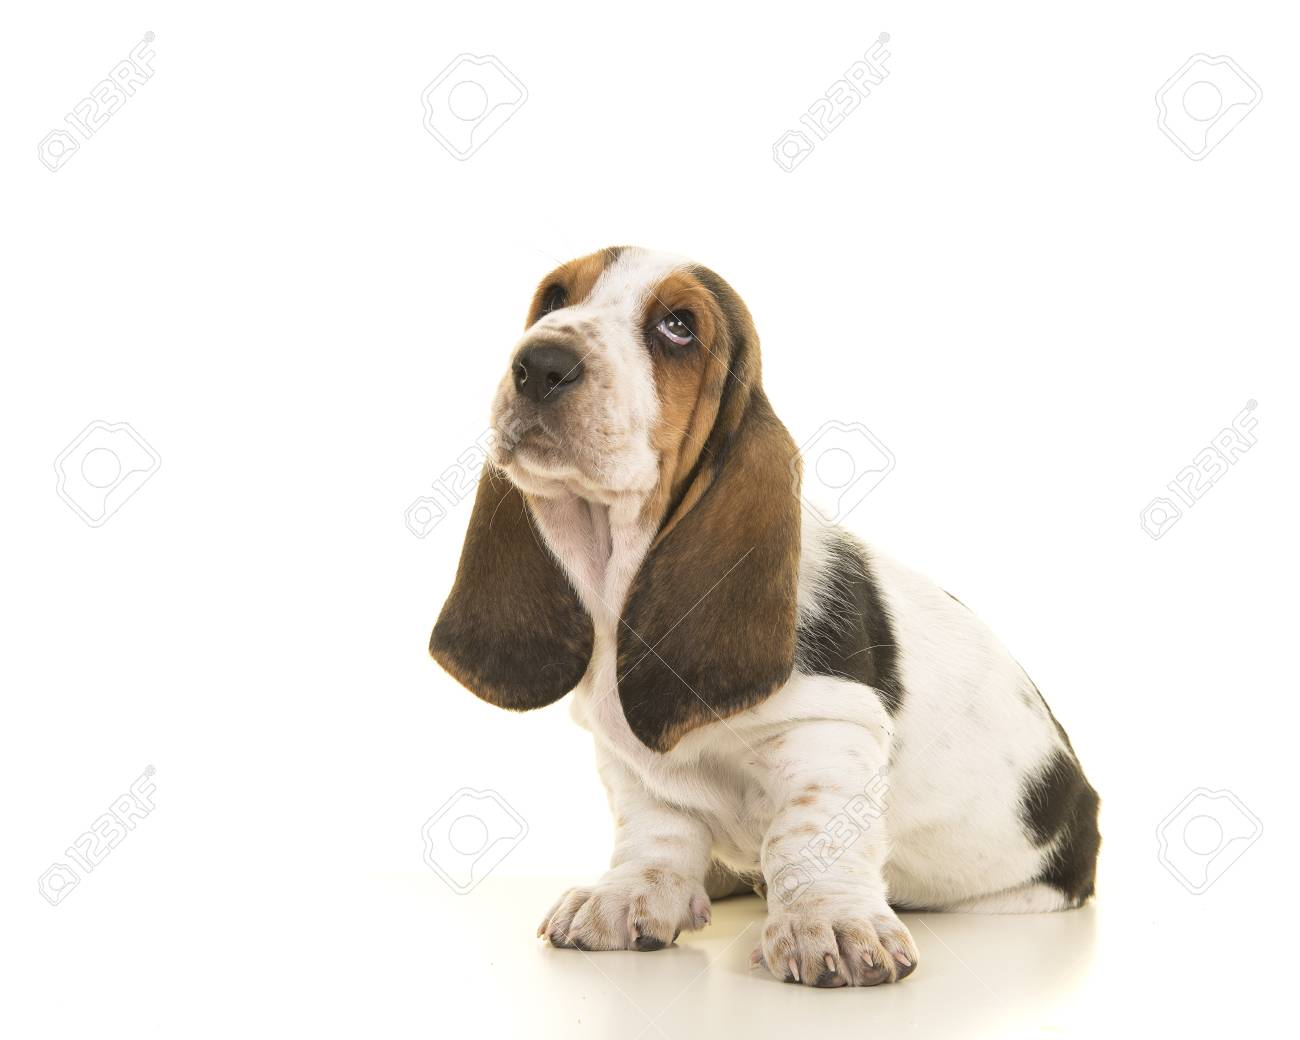 Cute Sitting Tricolor Basset Hound Puppy Looking Up Isolated Stock Photo Picture And Royalty Free Image Image 99629500